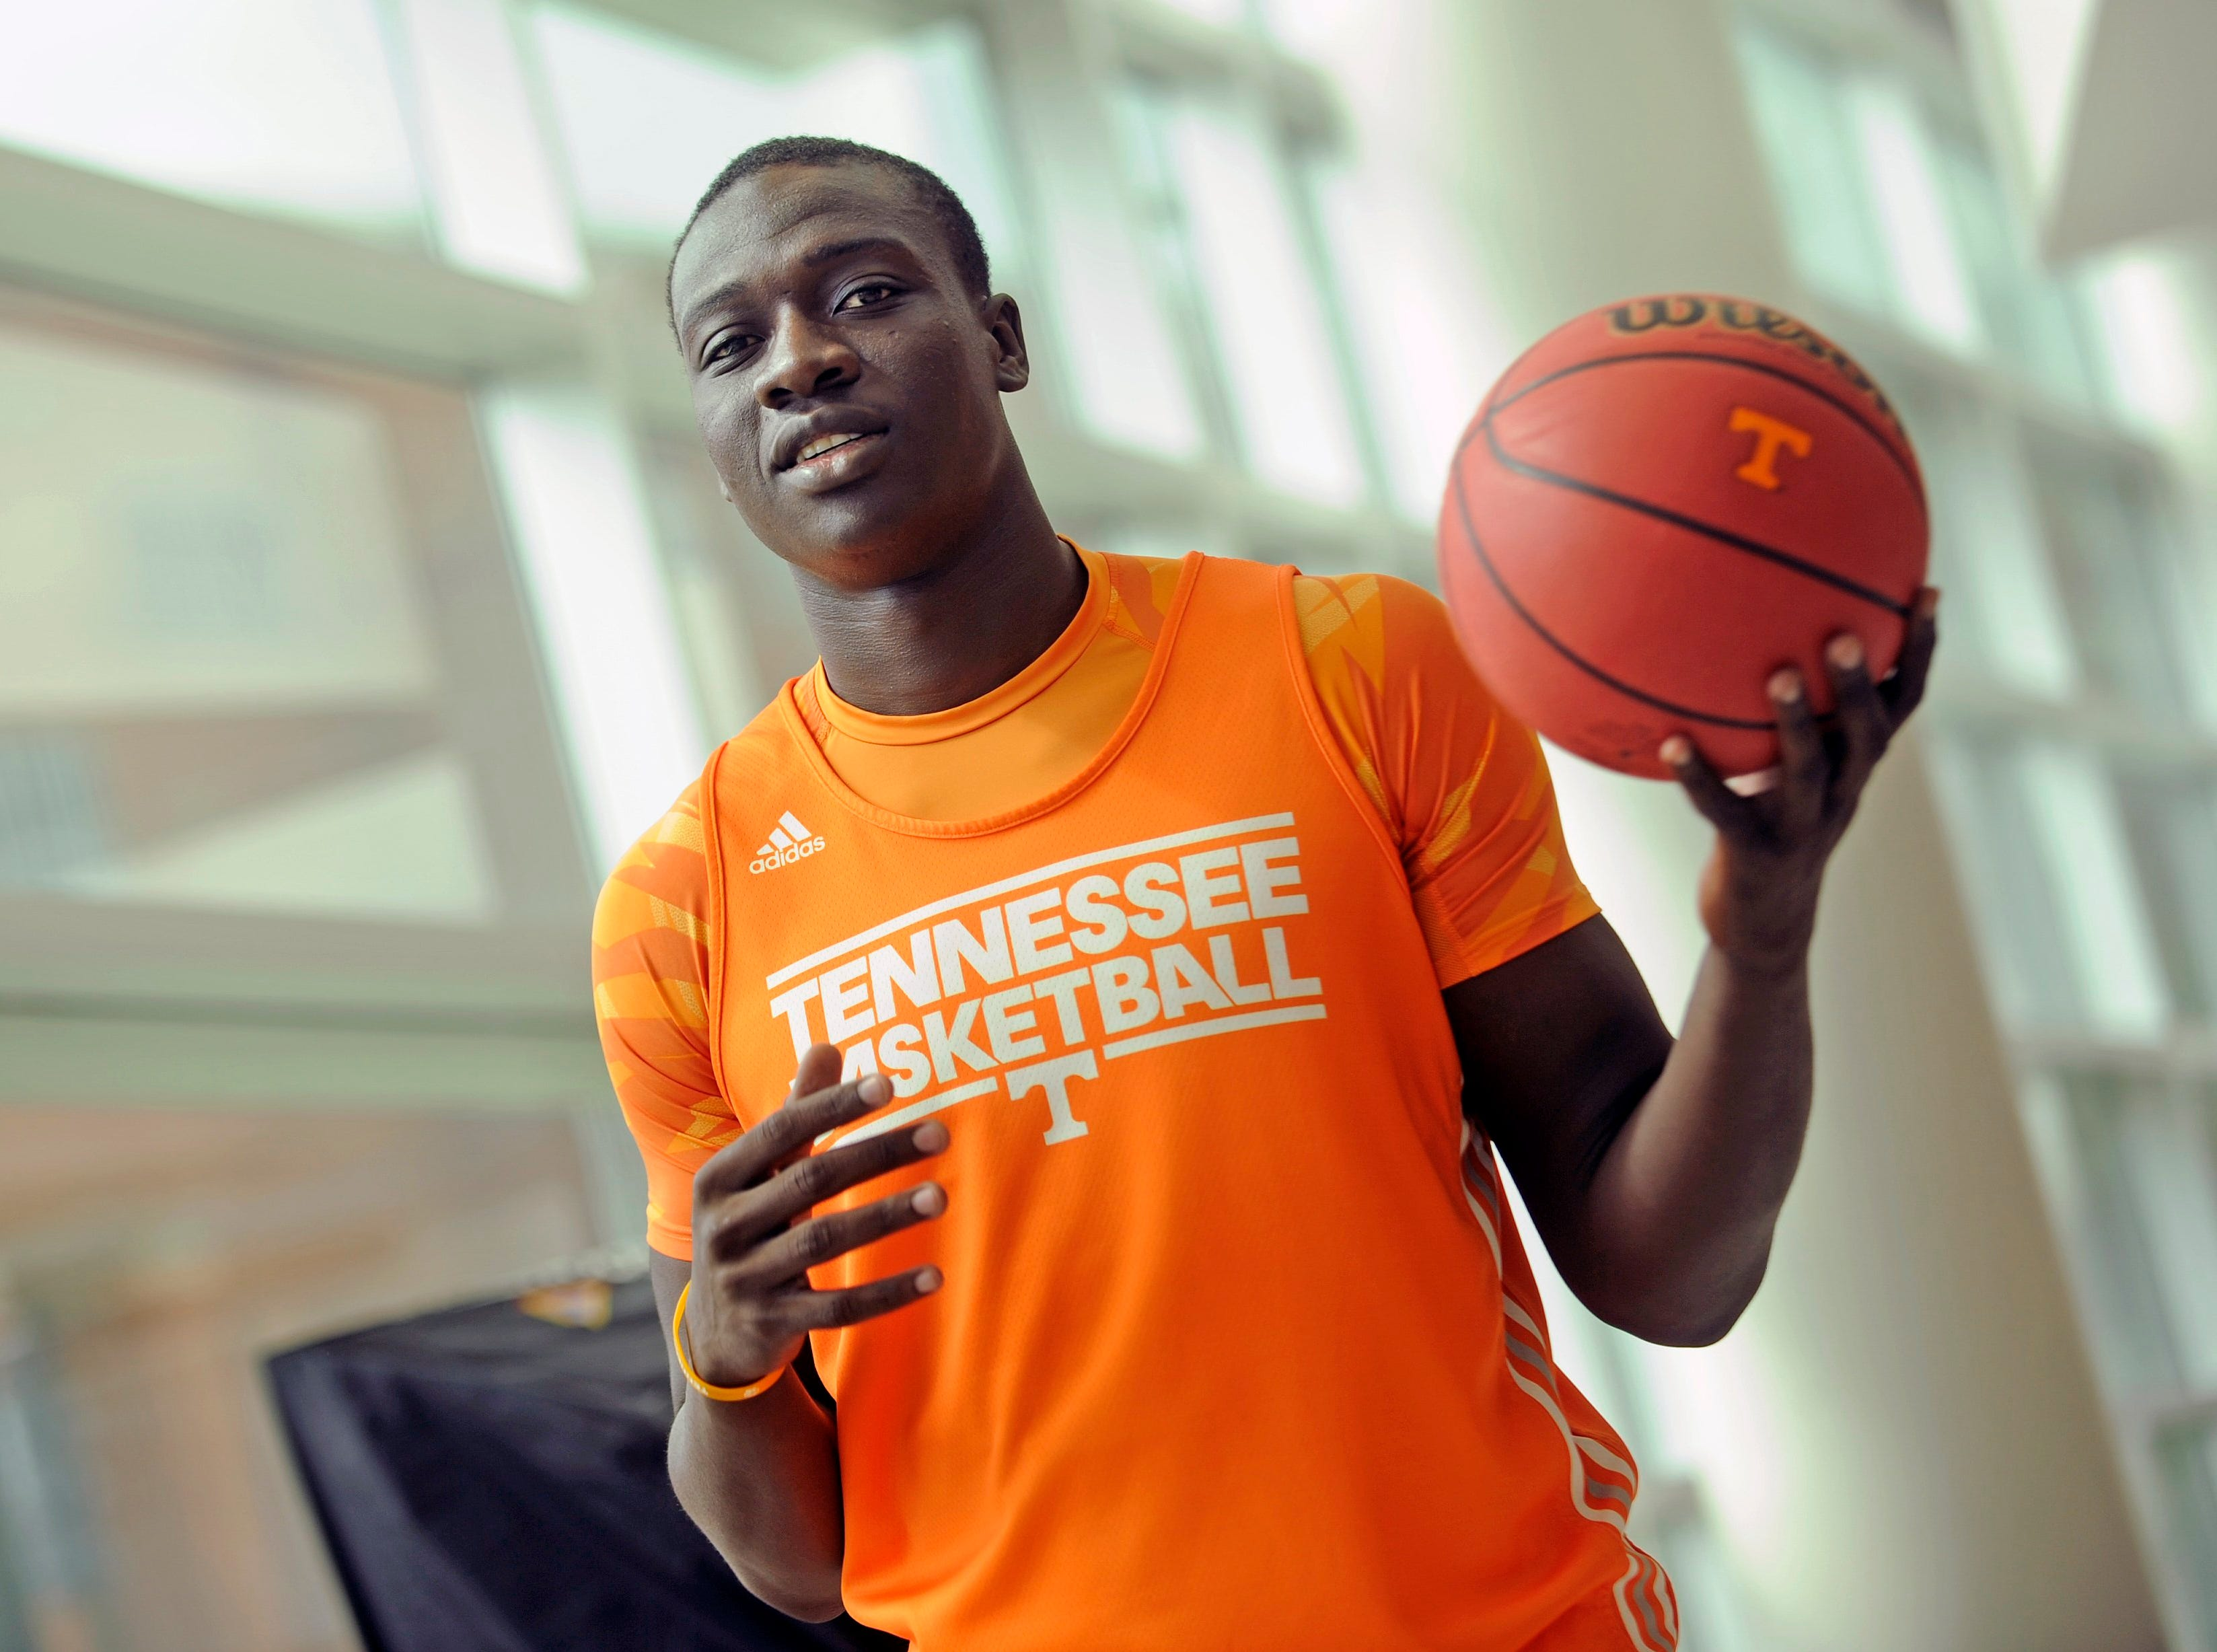 Basketball player Rawane Ndiaye poses for a portrait at University of Tennessee's Pratt Pavillion in Knoxville on Wednesday, Oct. 2, 2013.